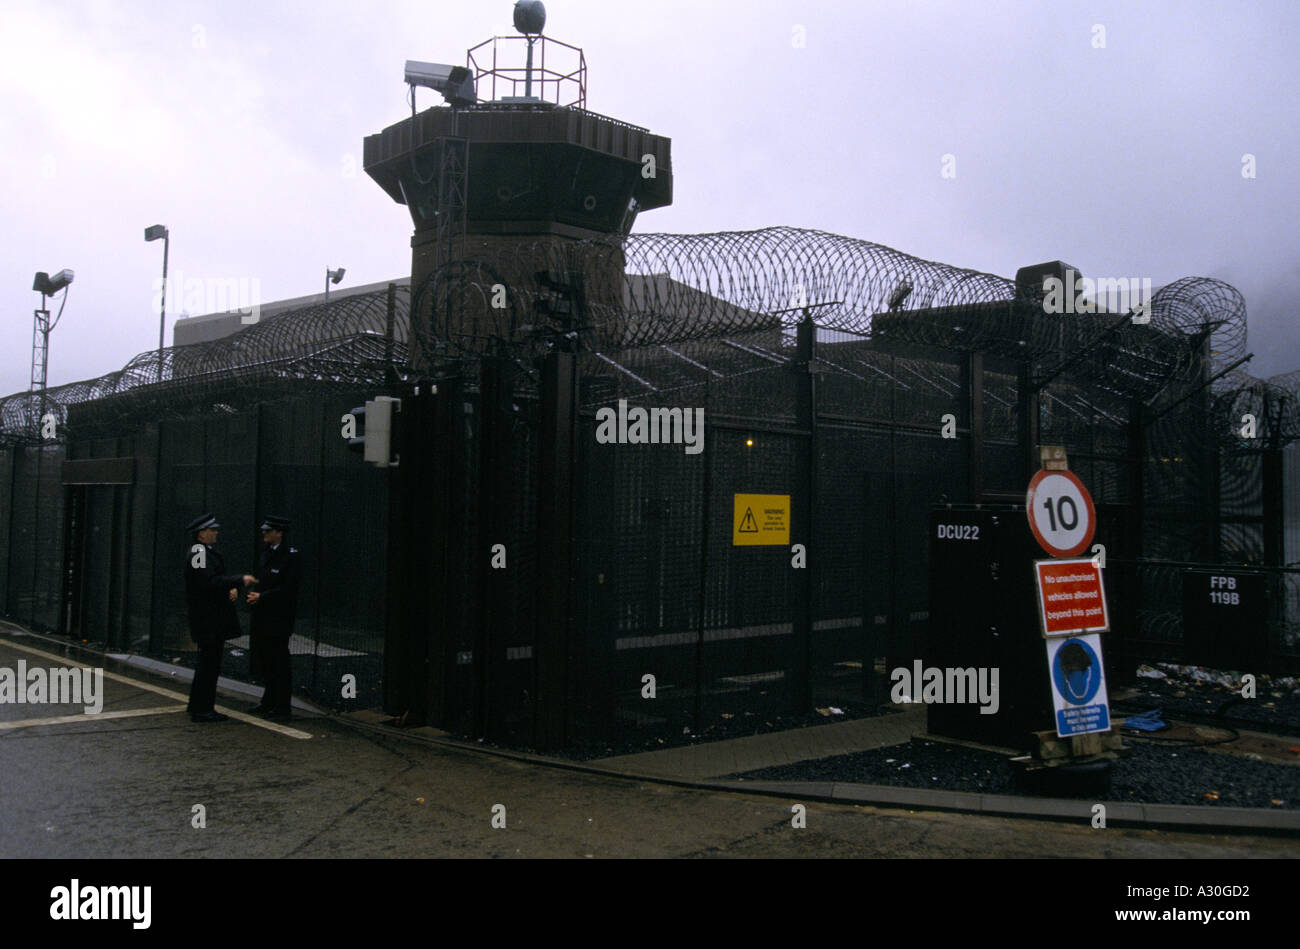 Guards at the security fence around Faslane Naval Base home of Trident Nuclear submarine - Stock Image